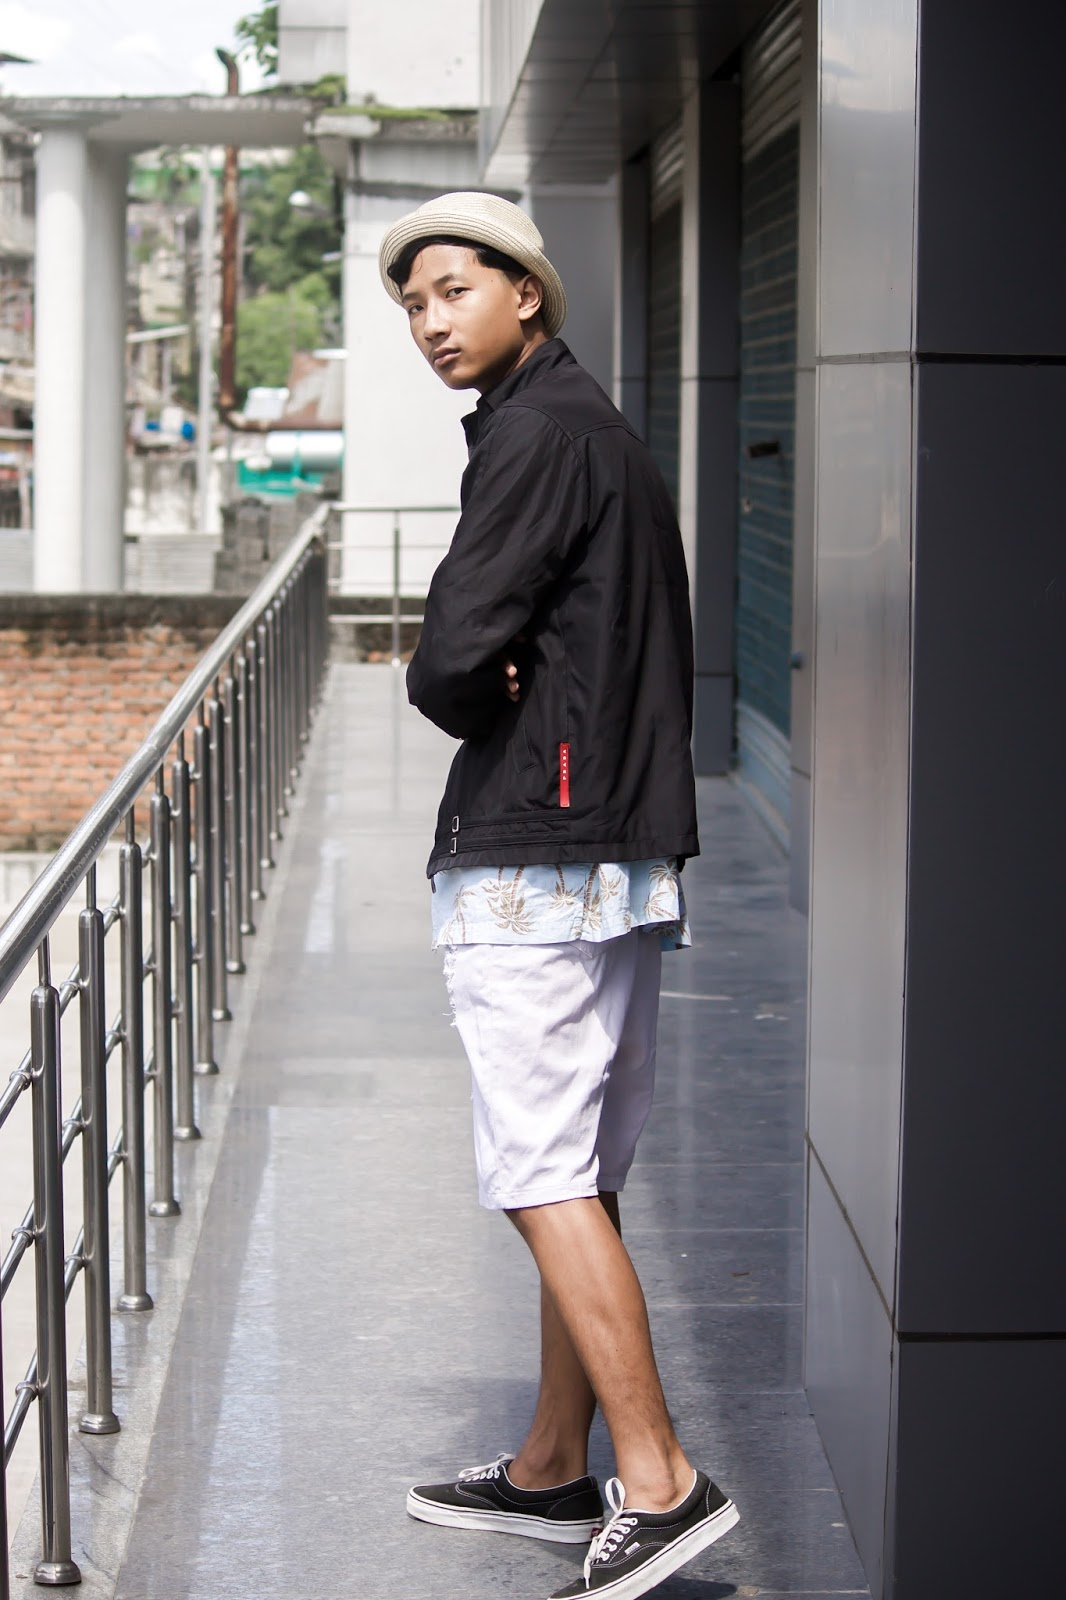 TheQuirkyMinimal by Kangkan Rabha for Farfetch Apple Music partnership wearing Vintage Prada jacket, Old Navy Printed shirt, Thrifted DIY pants, Black Vans via Jabong, Levis Hat